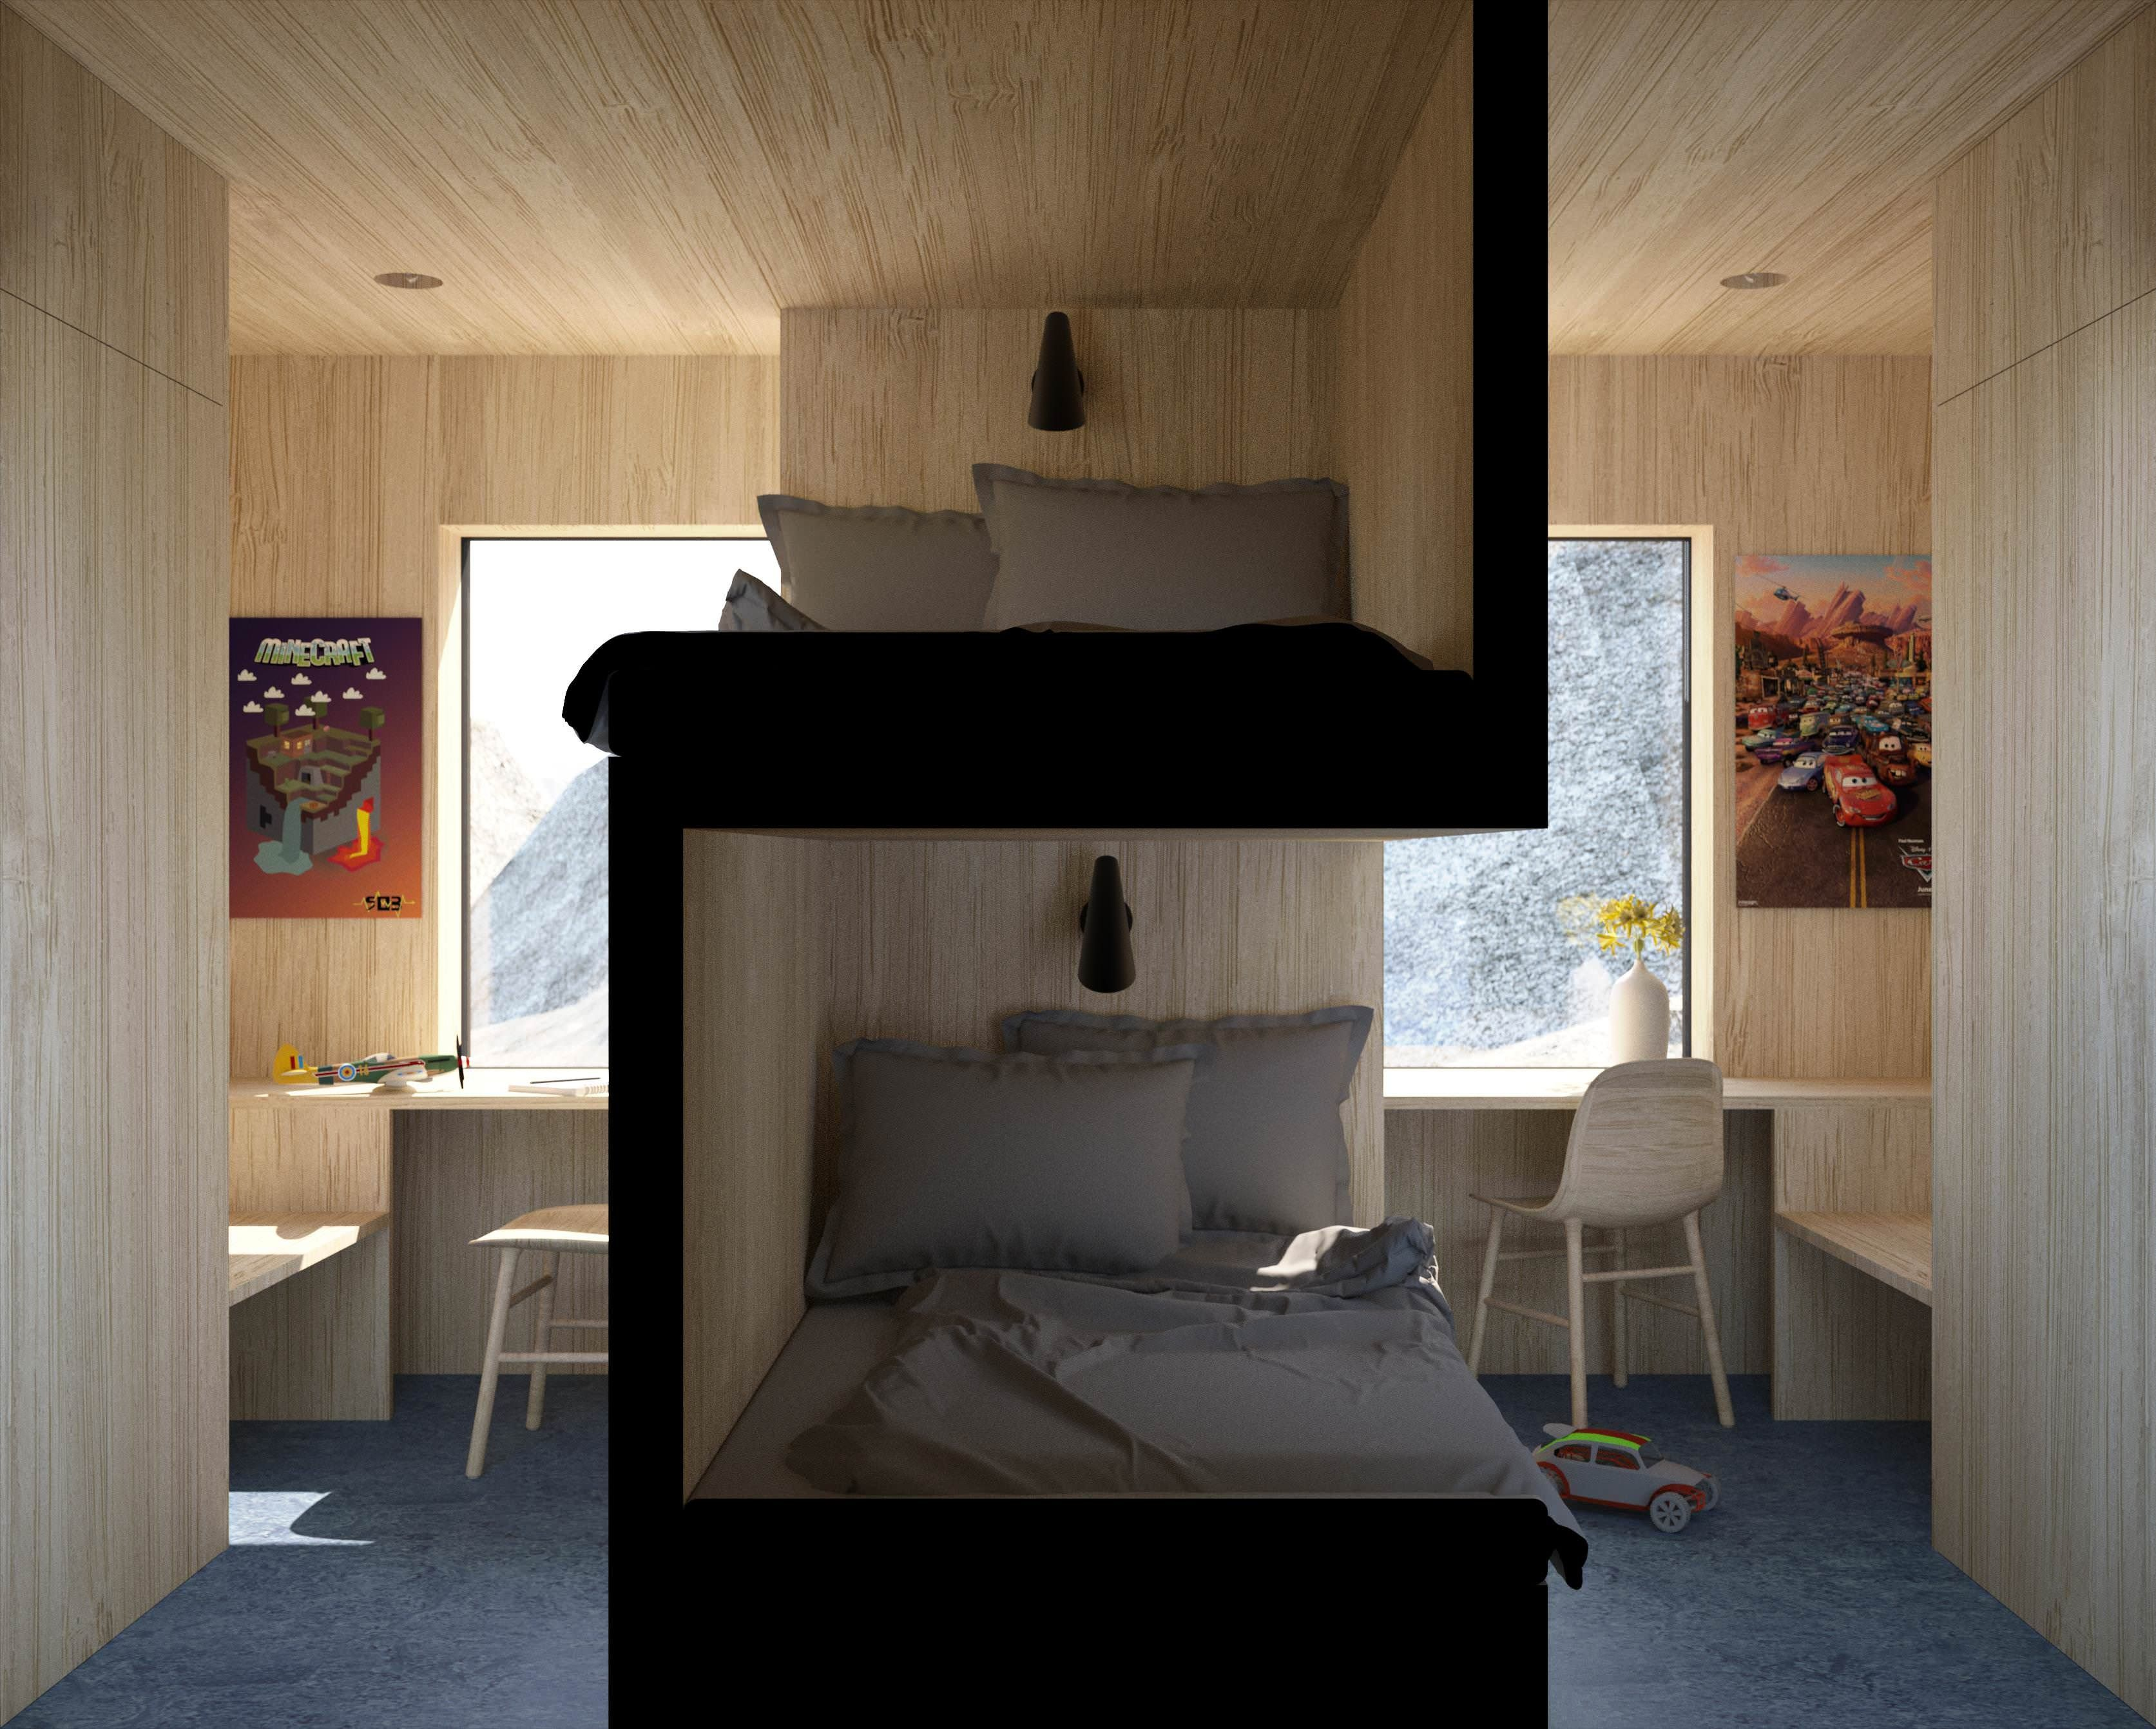 Nice design for a student room with some privacy pics dorm ideas